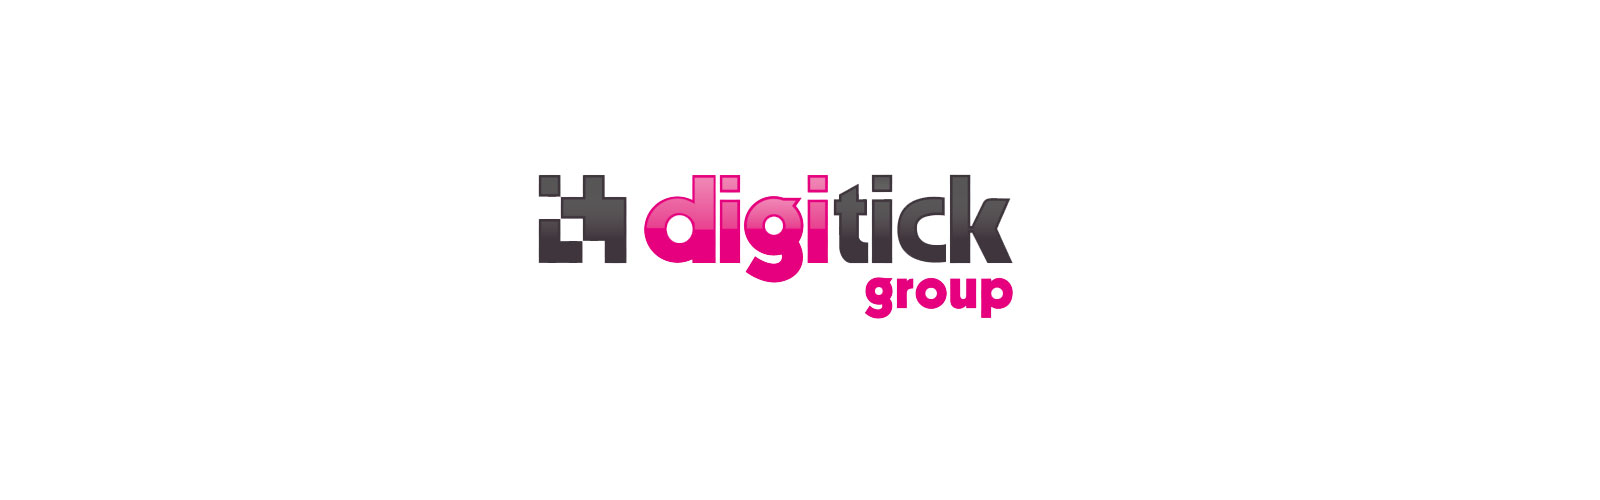 digitick-group